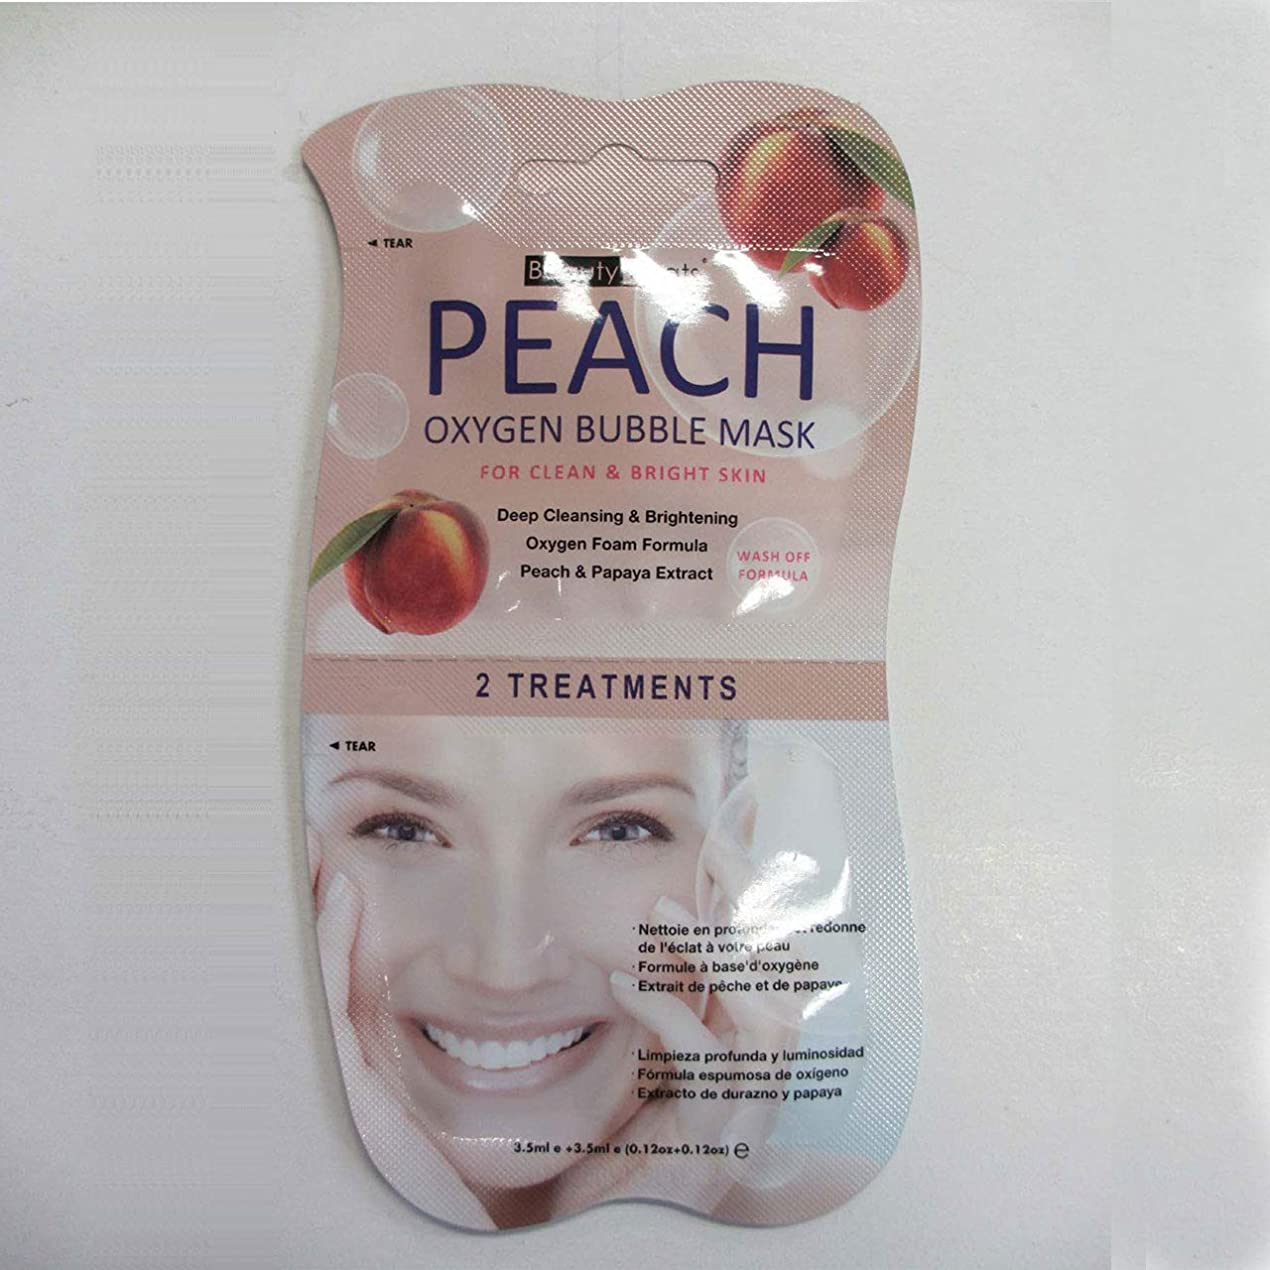 暖炉反発警察署BEAUTY TREATS Peach Oxygen Bubble Mask Peach (並行輸入品)